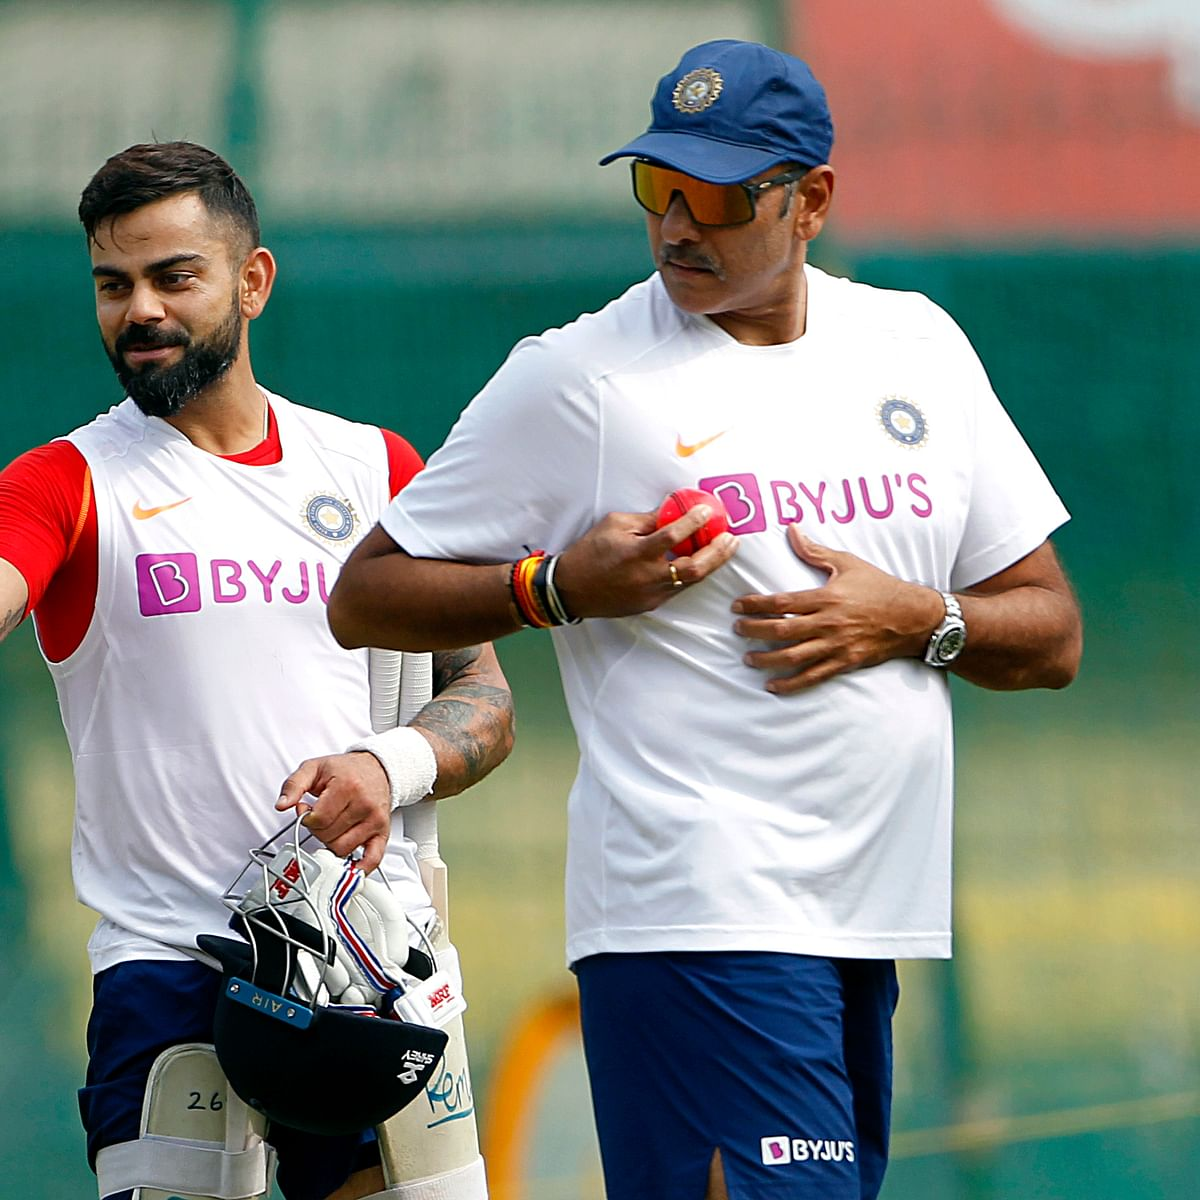 Virat Kohli's captaincy feat vs Australia hard to emulate, says head coach Ravi Shastri